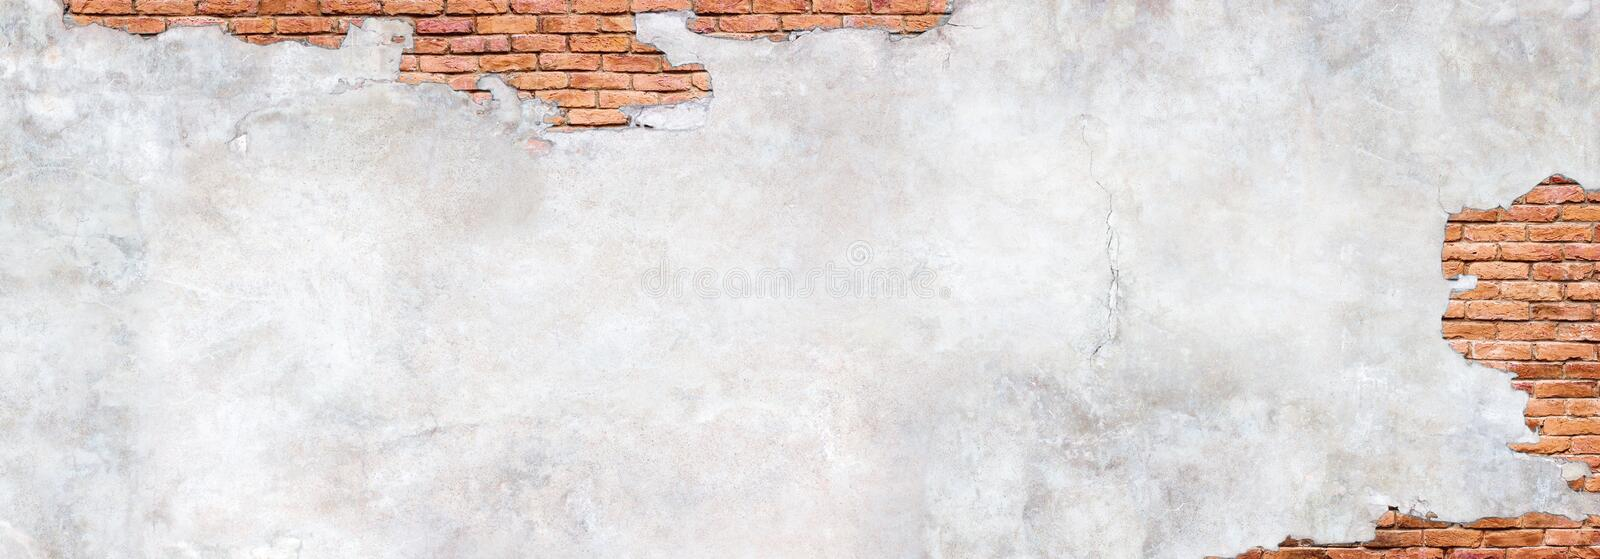 Antique brick wall under damaged plaster. Weathered brickwork texture with cracked concrete stock image